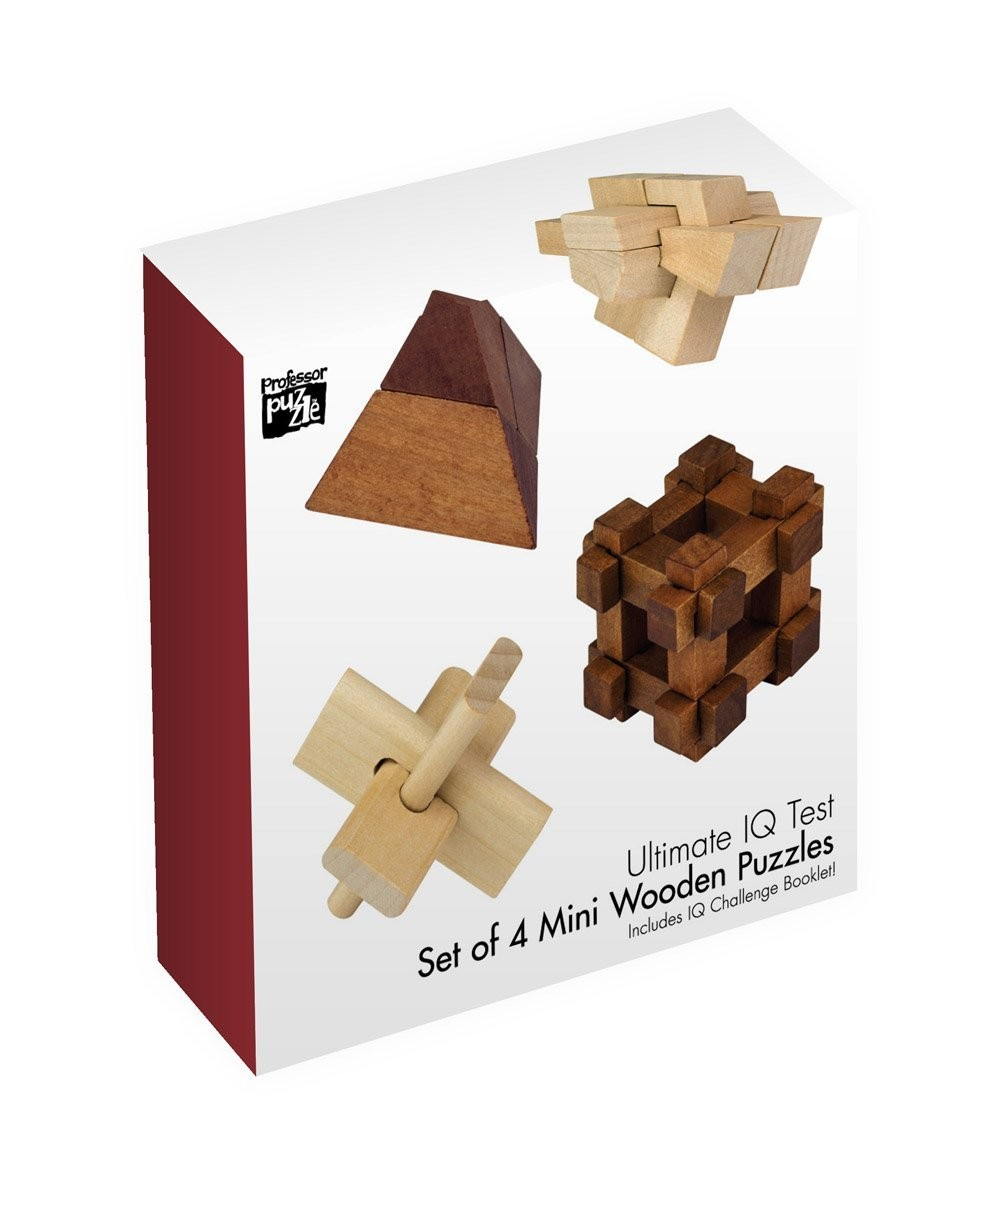 Set of 4 Mini Wooden Puzzle by Professor Puzzle